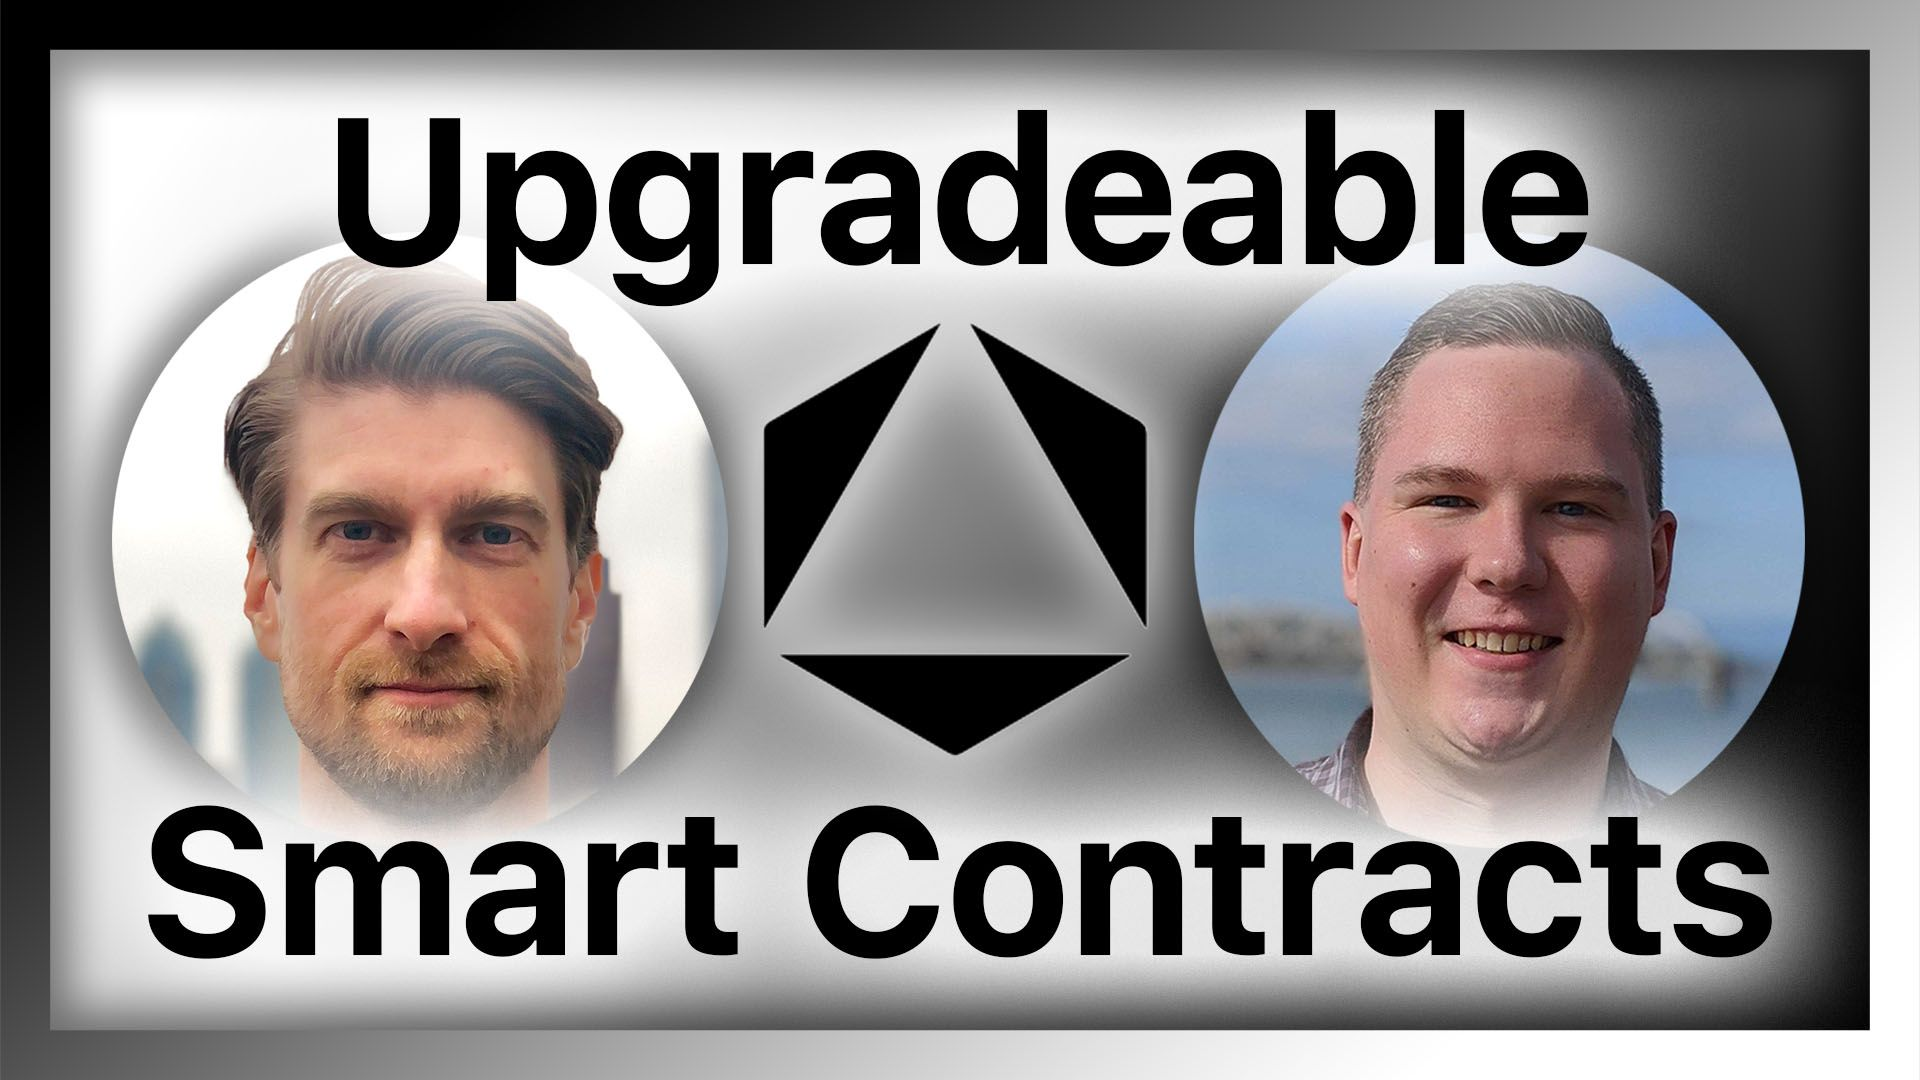 /what-are-upgradeable-smart-contracts-watch-video-lq1235x3 feature image